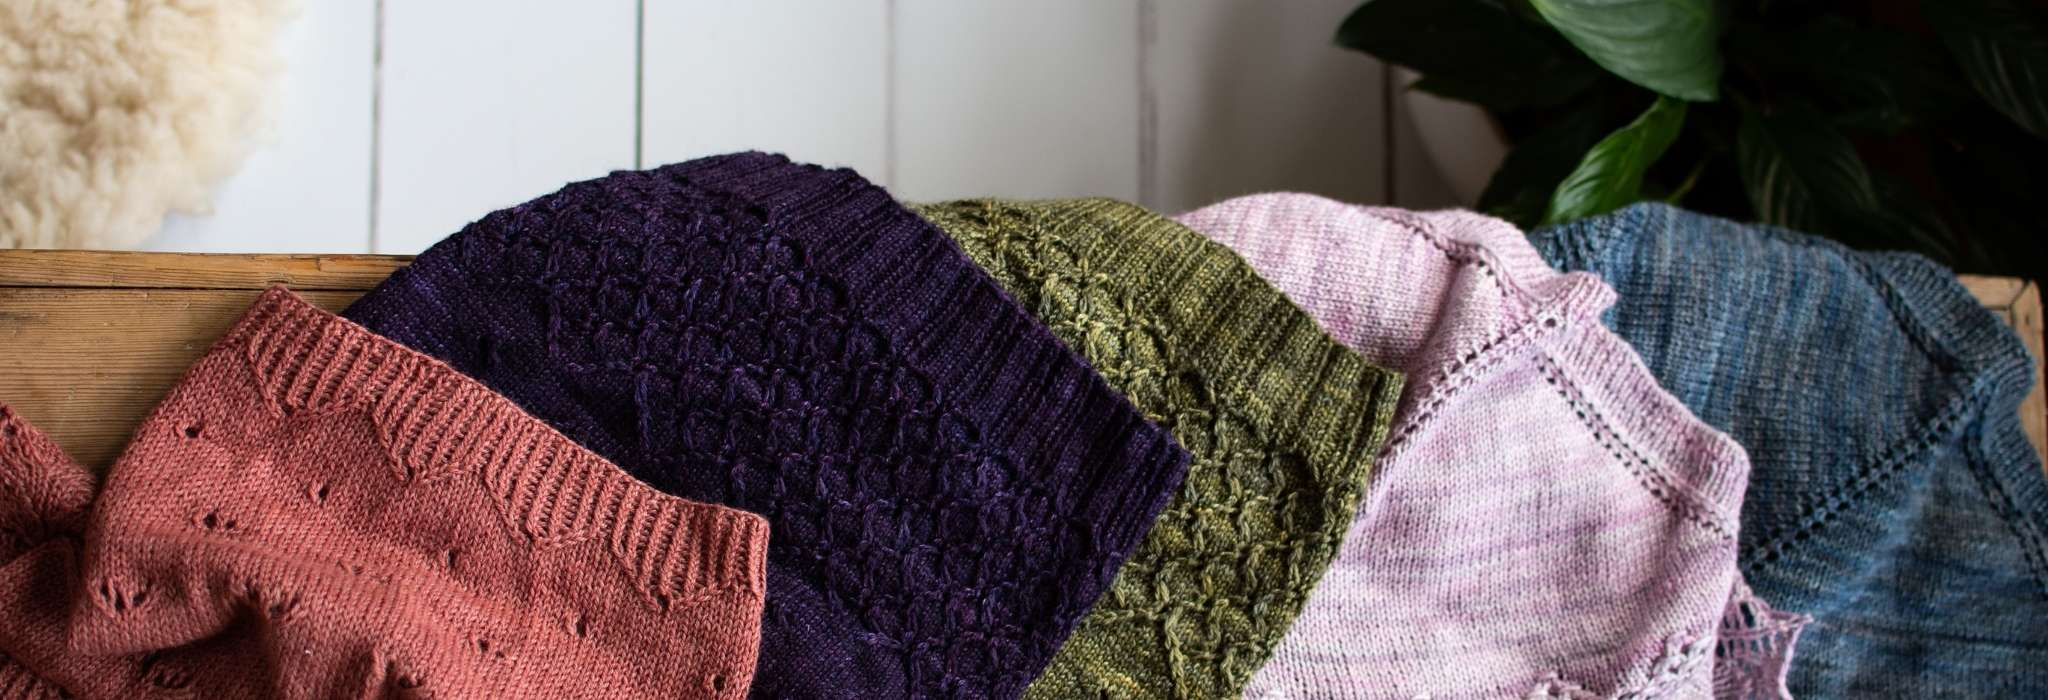 A line up of light weight lacey cowls on a wooden bench